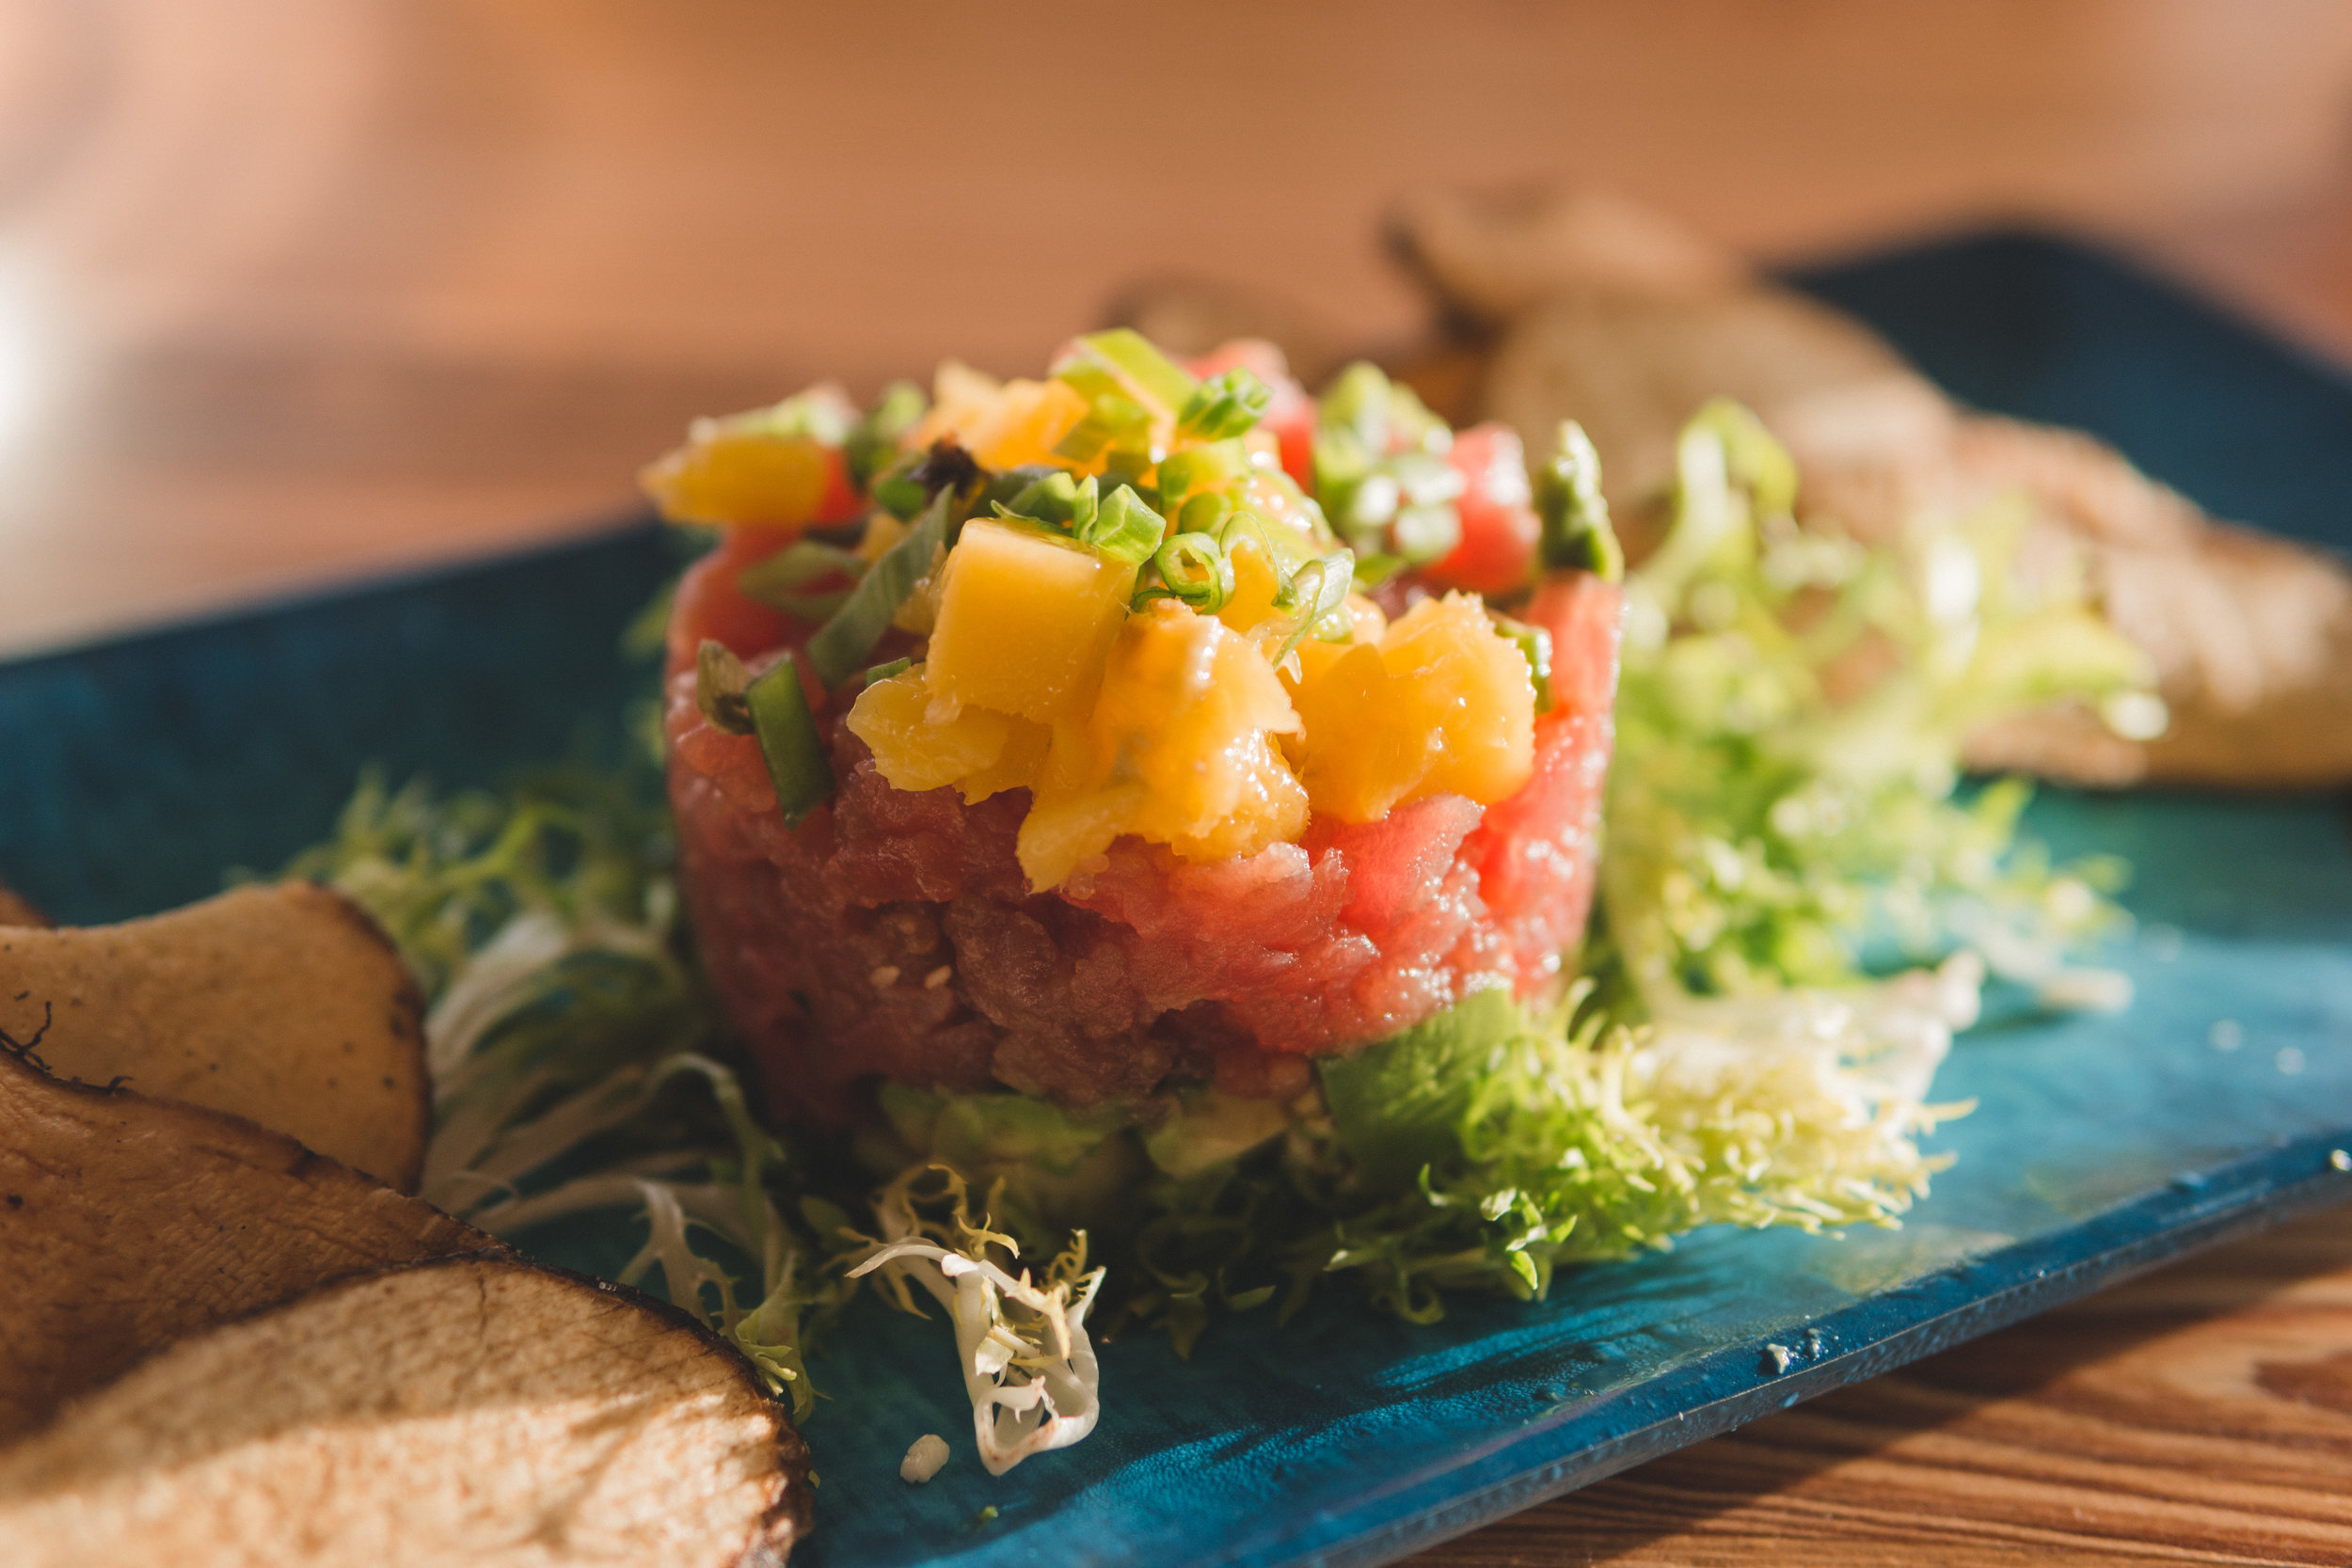 Gaspar's Tuna Tartare: Old Florida recipe with avocado, sesame & ginger-soy drizzle, served with malanga chips